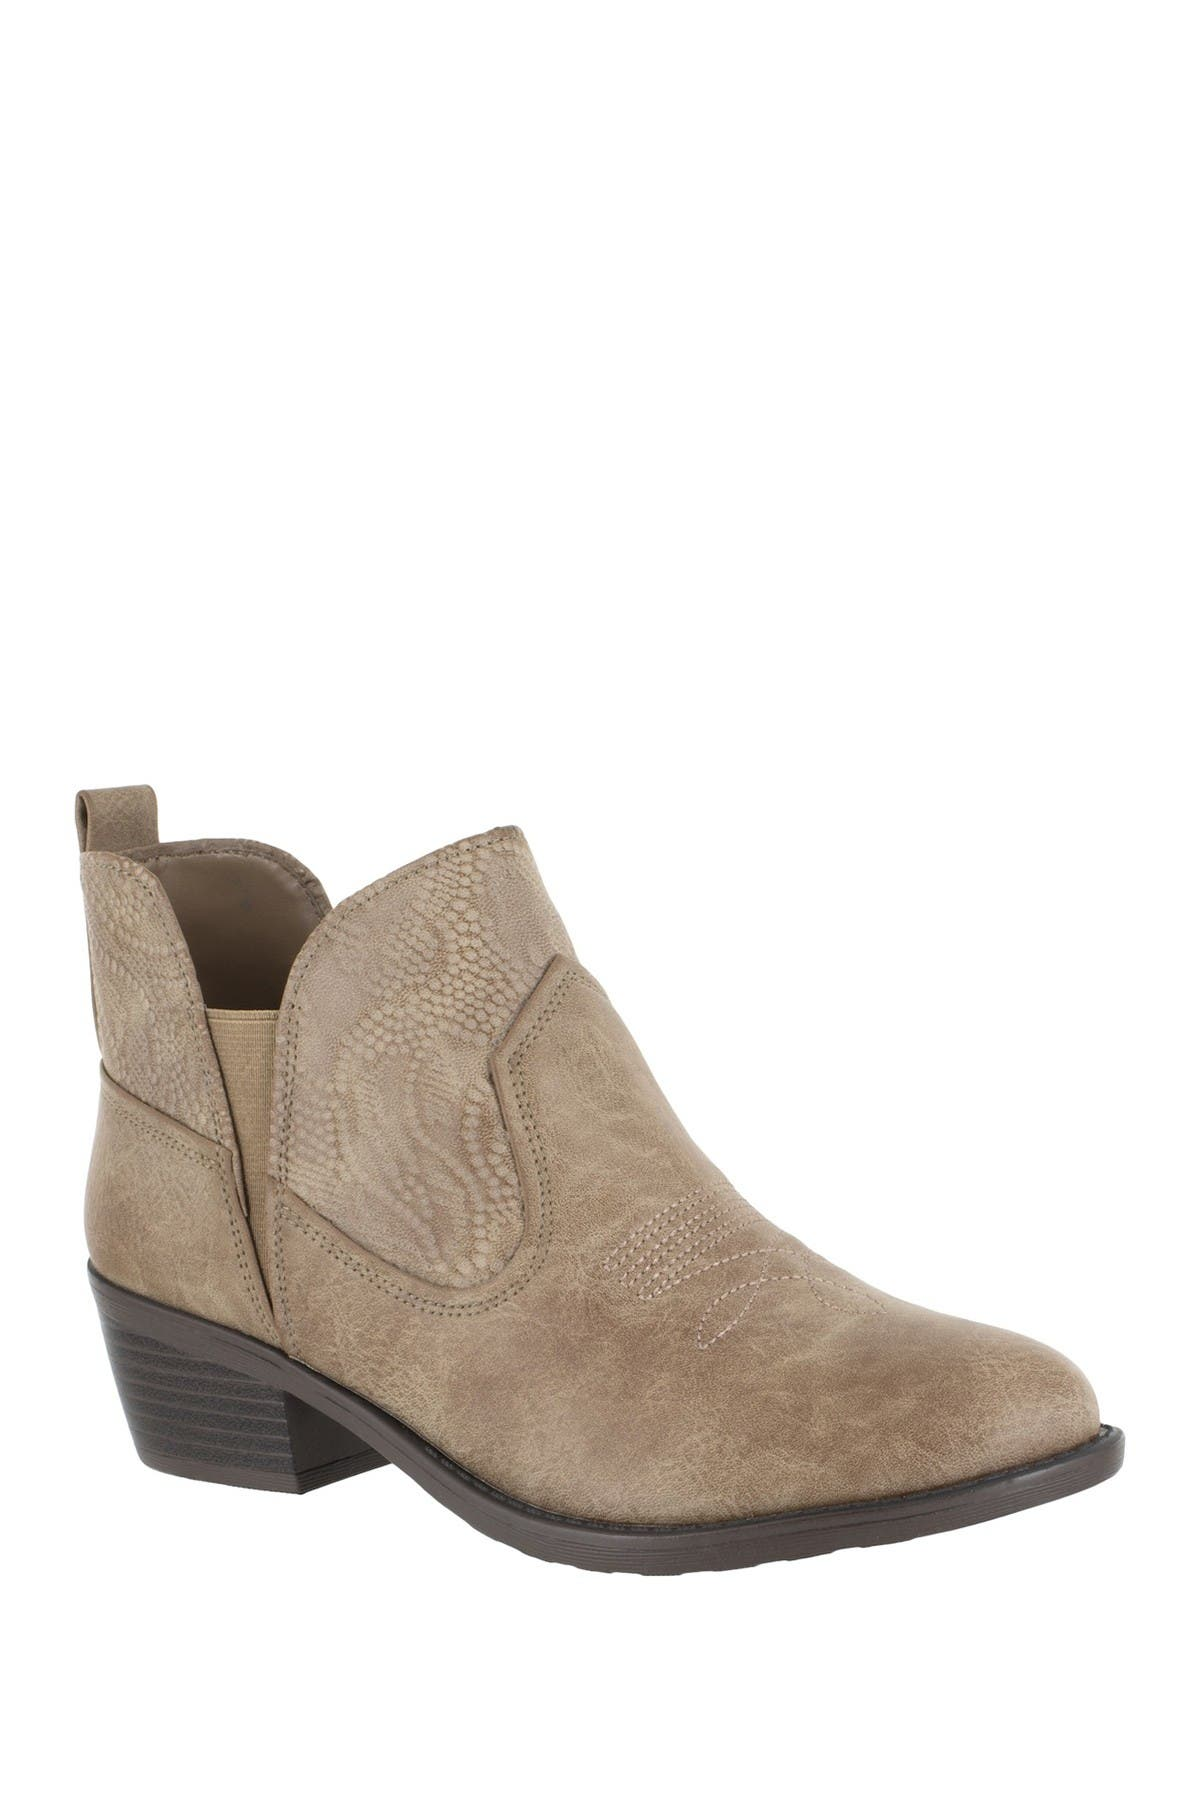 Image of EASY STREET Legend Western Inspired Bootie - Multiple Widths Available